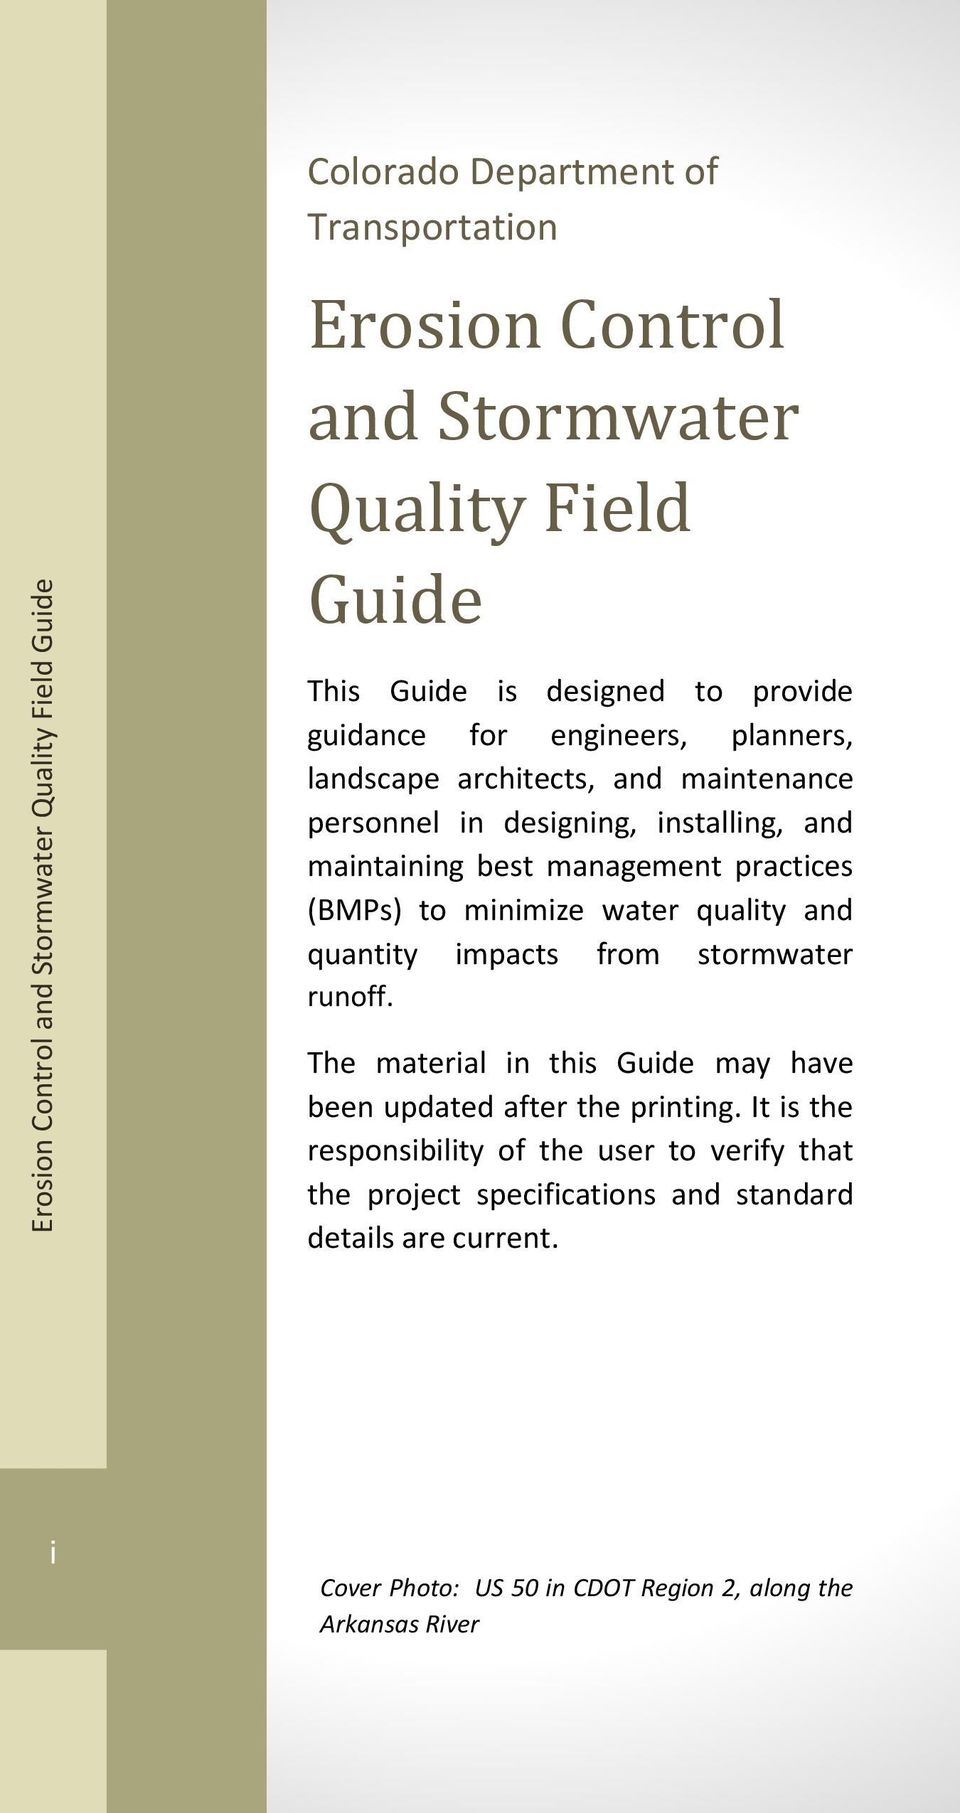 practices (BMPs) to minimize water quality and quantity impacts from stormwater runoff. The material in this Guide may have been updated after the printing.